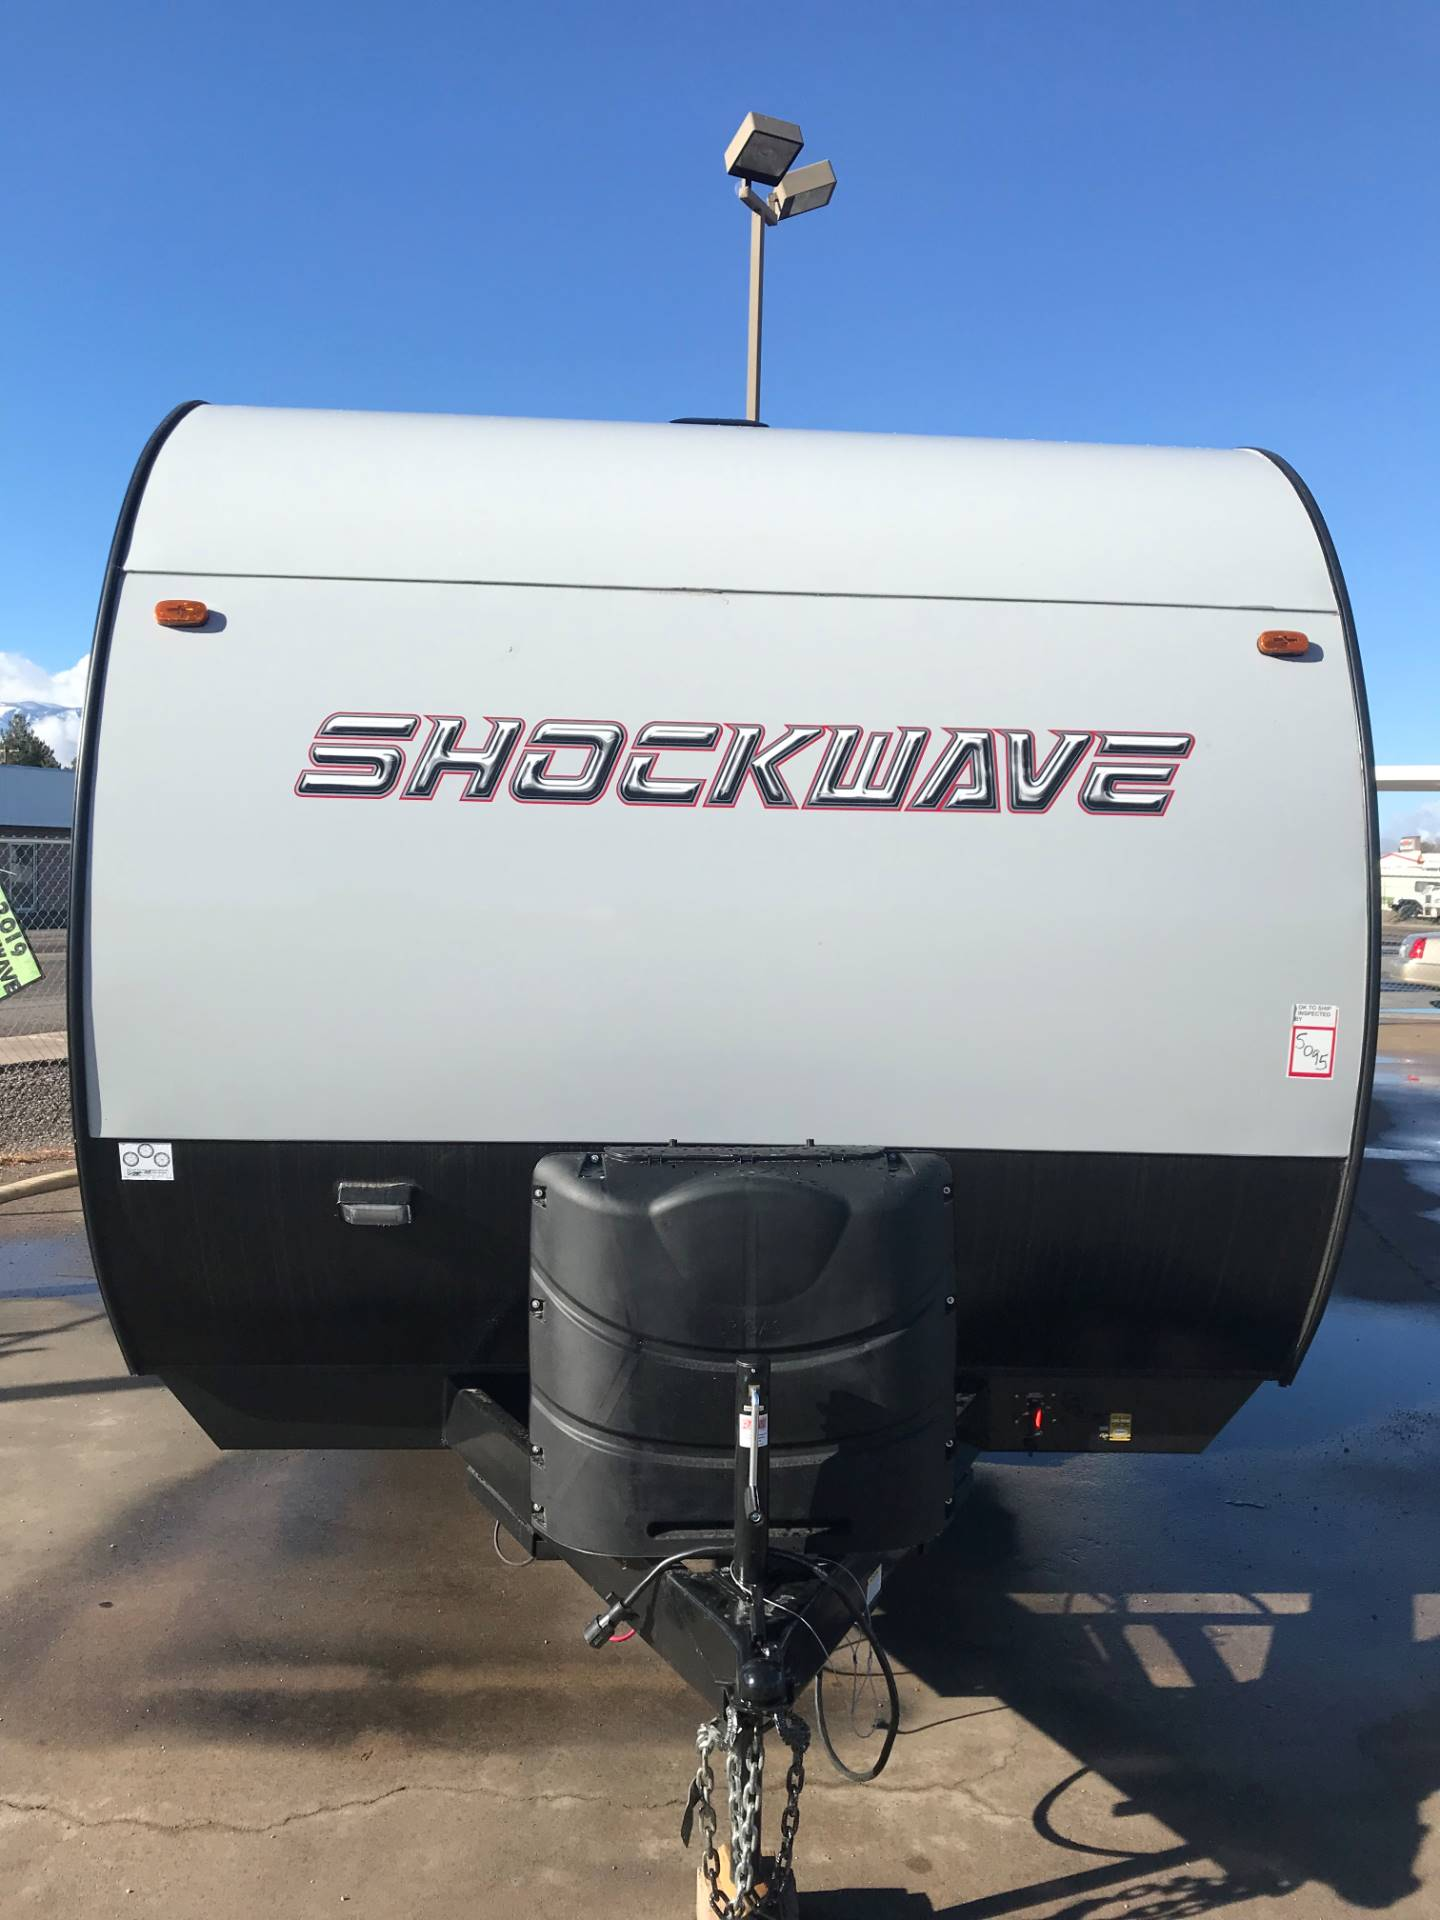 2019 FOREST RIVER Shockwave Toy Hauler in Safford, Arizona - Photo 3